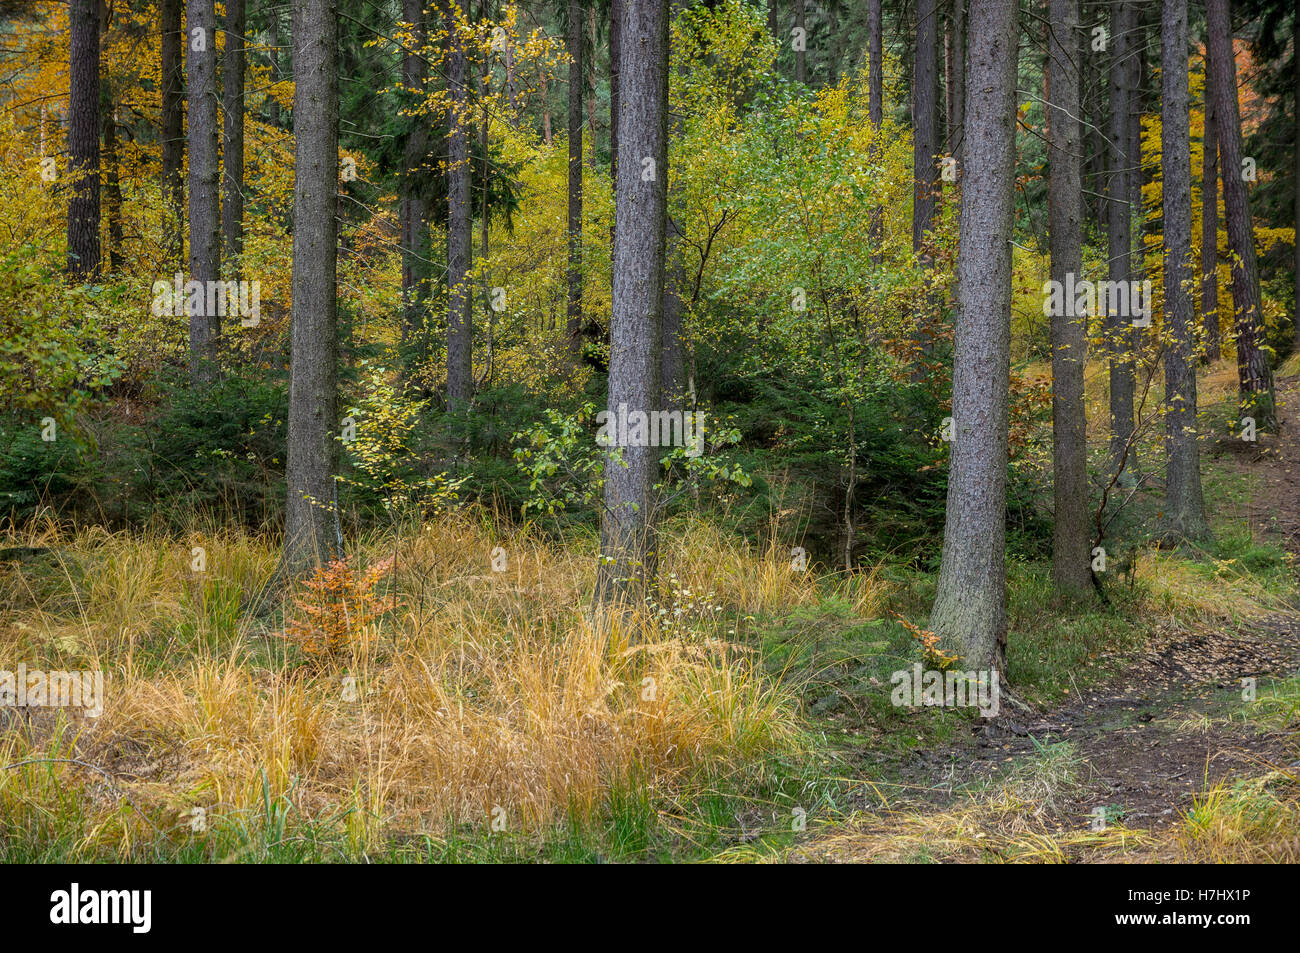 Central European colorful mixed forest in autumn - Stock Image